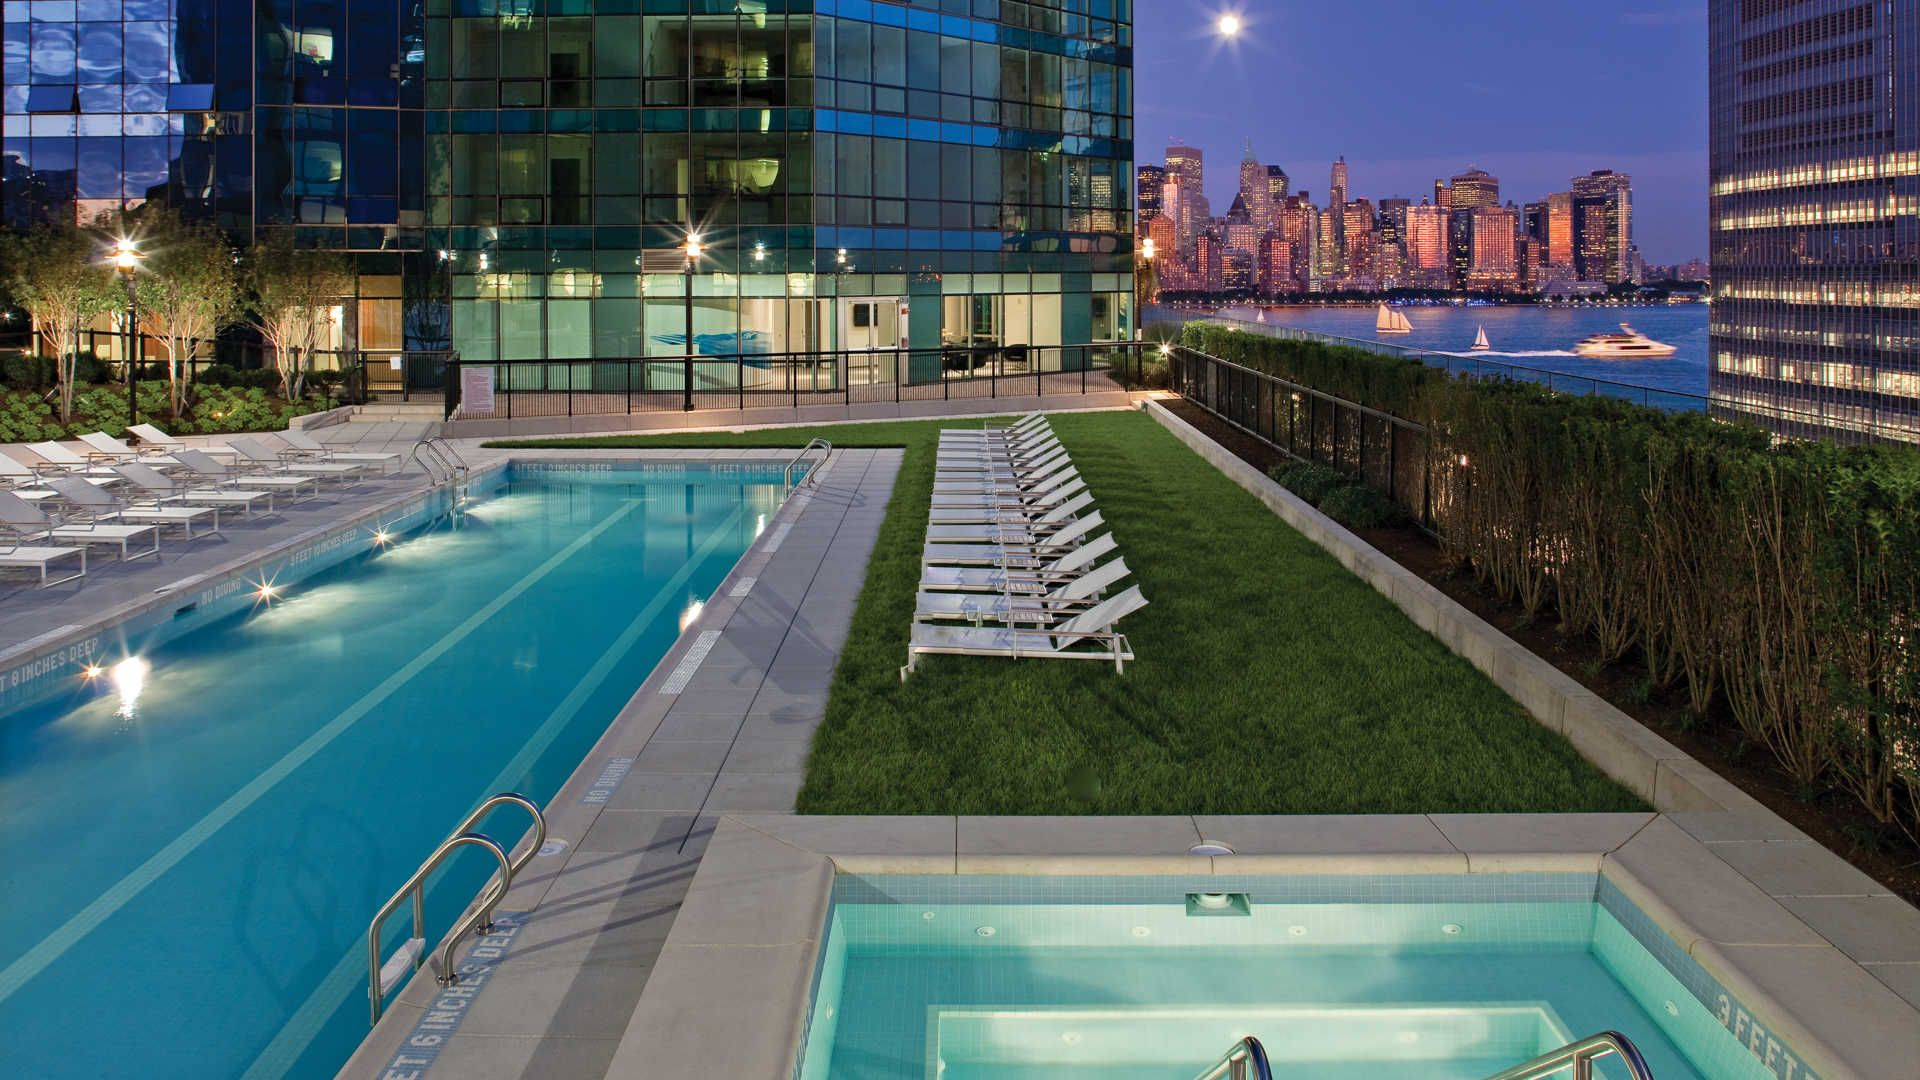 70 greene apartments downtown apartment jersey city